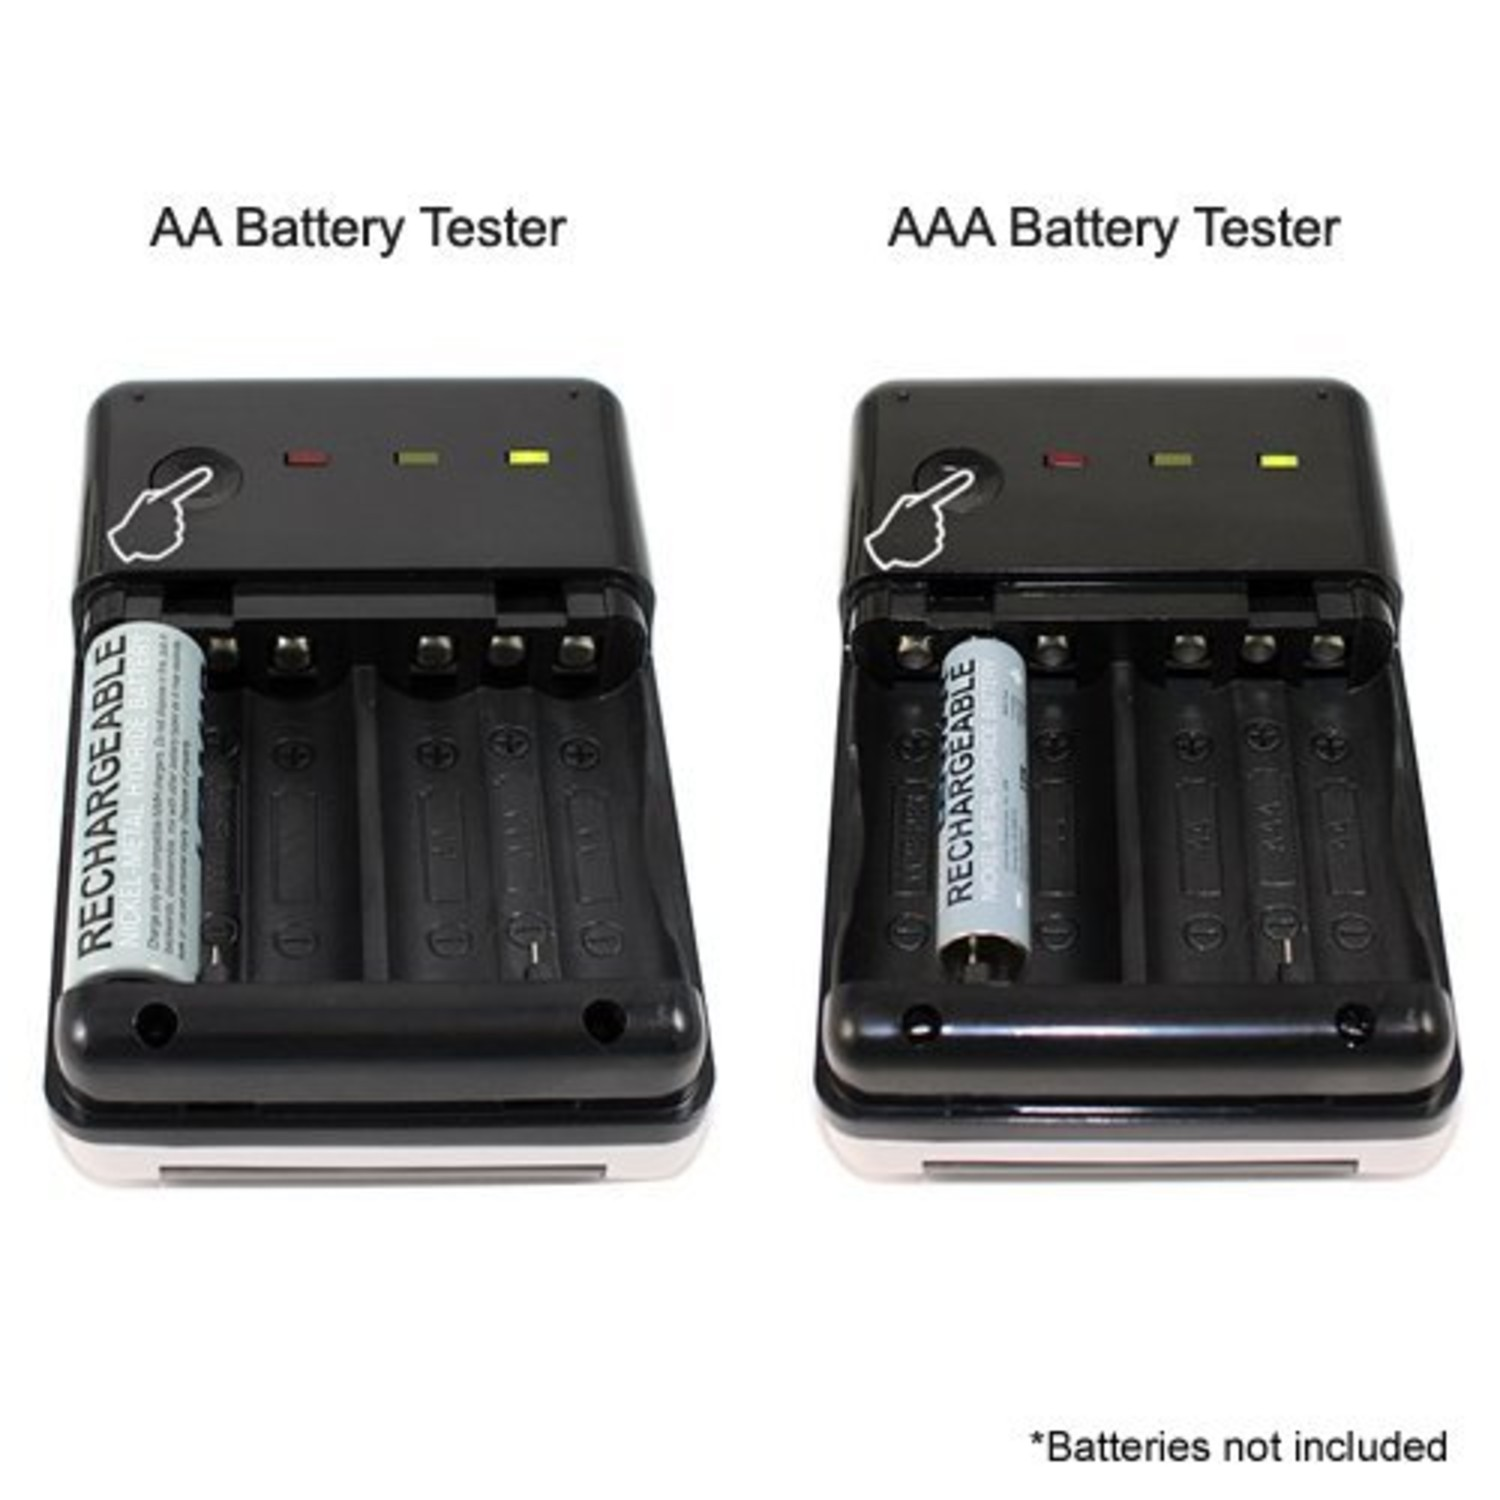 xtg solar aa aaa battery charger and tester lenmar touch of modern. Black Bedroom Furniture Sets. Home Design Ideas